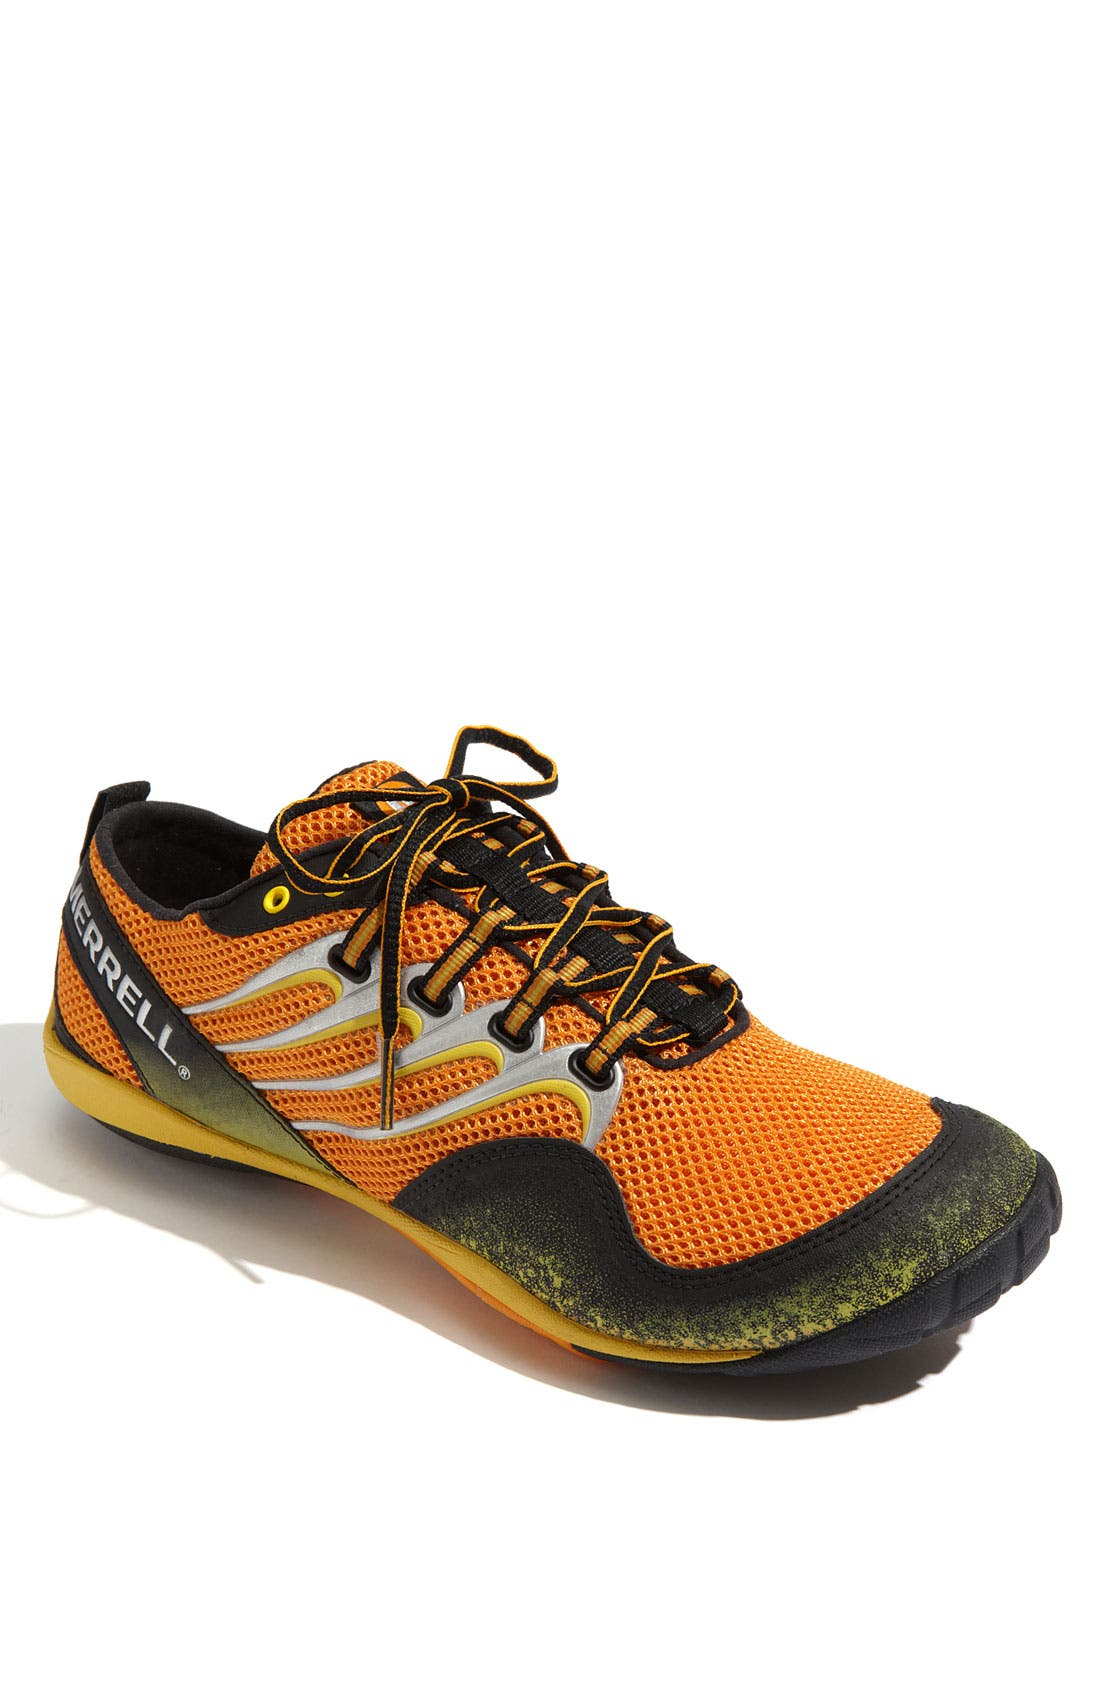 Alternate Image 1 Selected - Merrell 'Trail Glove' Running Shoe (Men)